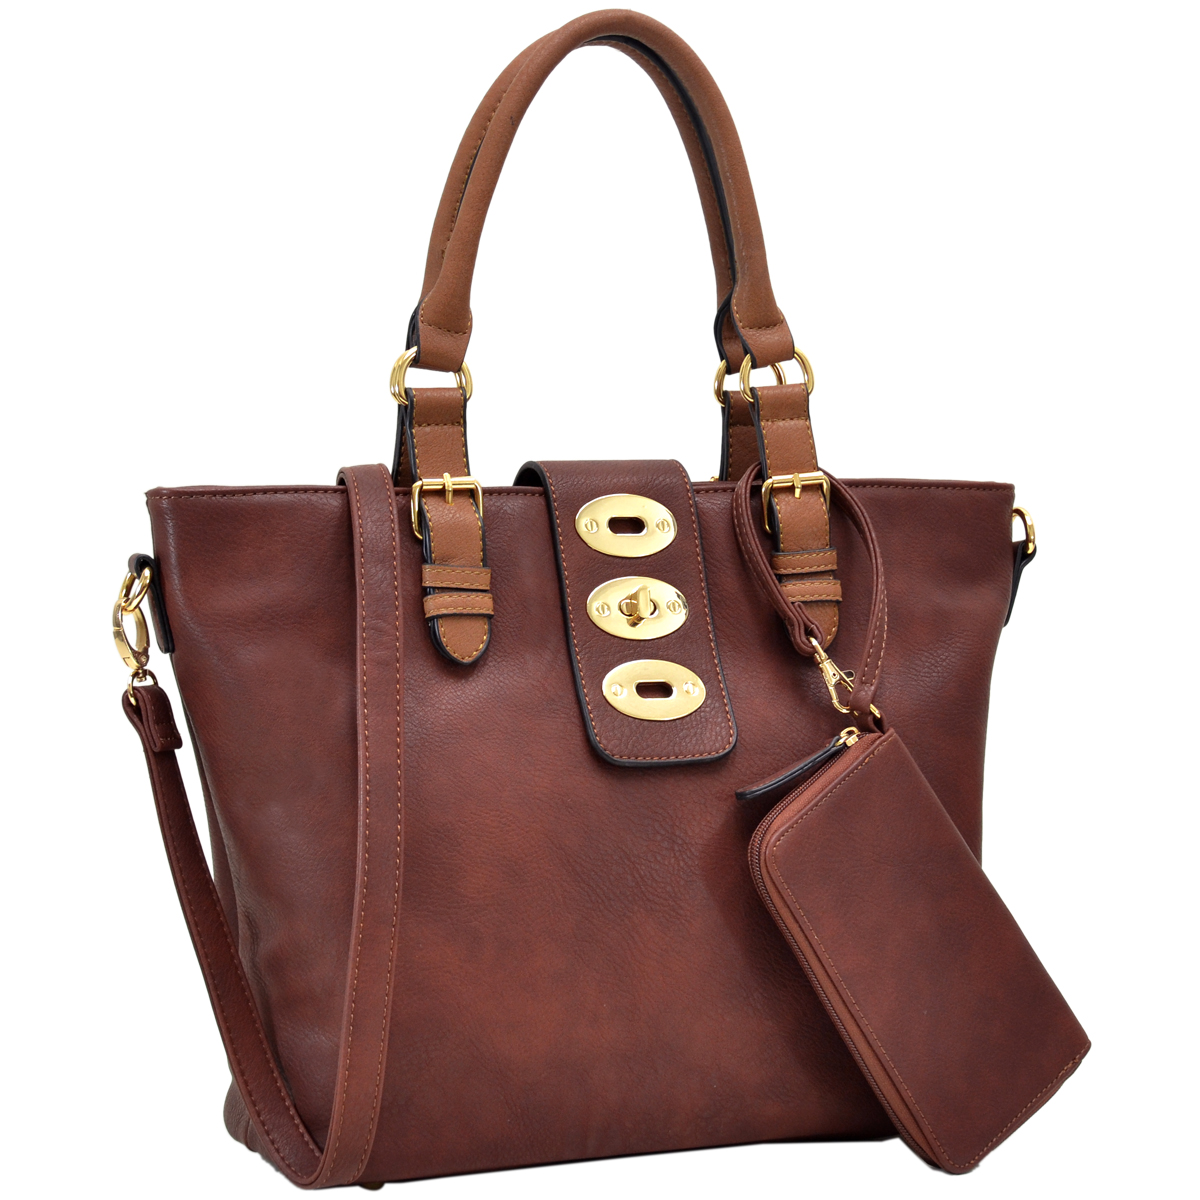 Dasein Fashion Faux Leather Work Tote with Adjustable Twist Lock and Matching Wristlet